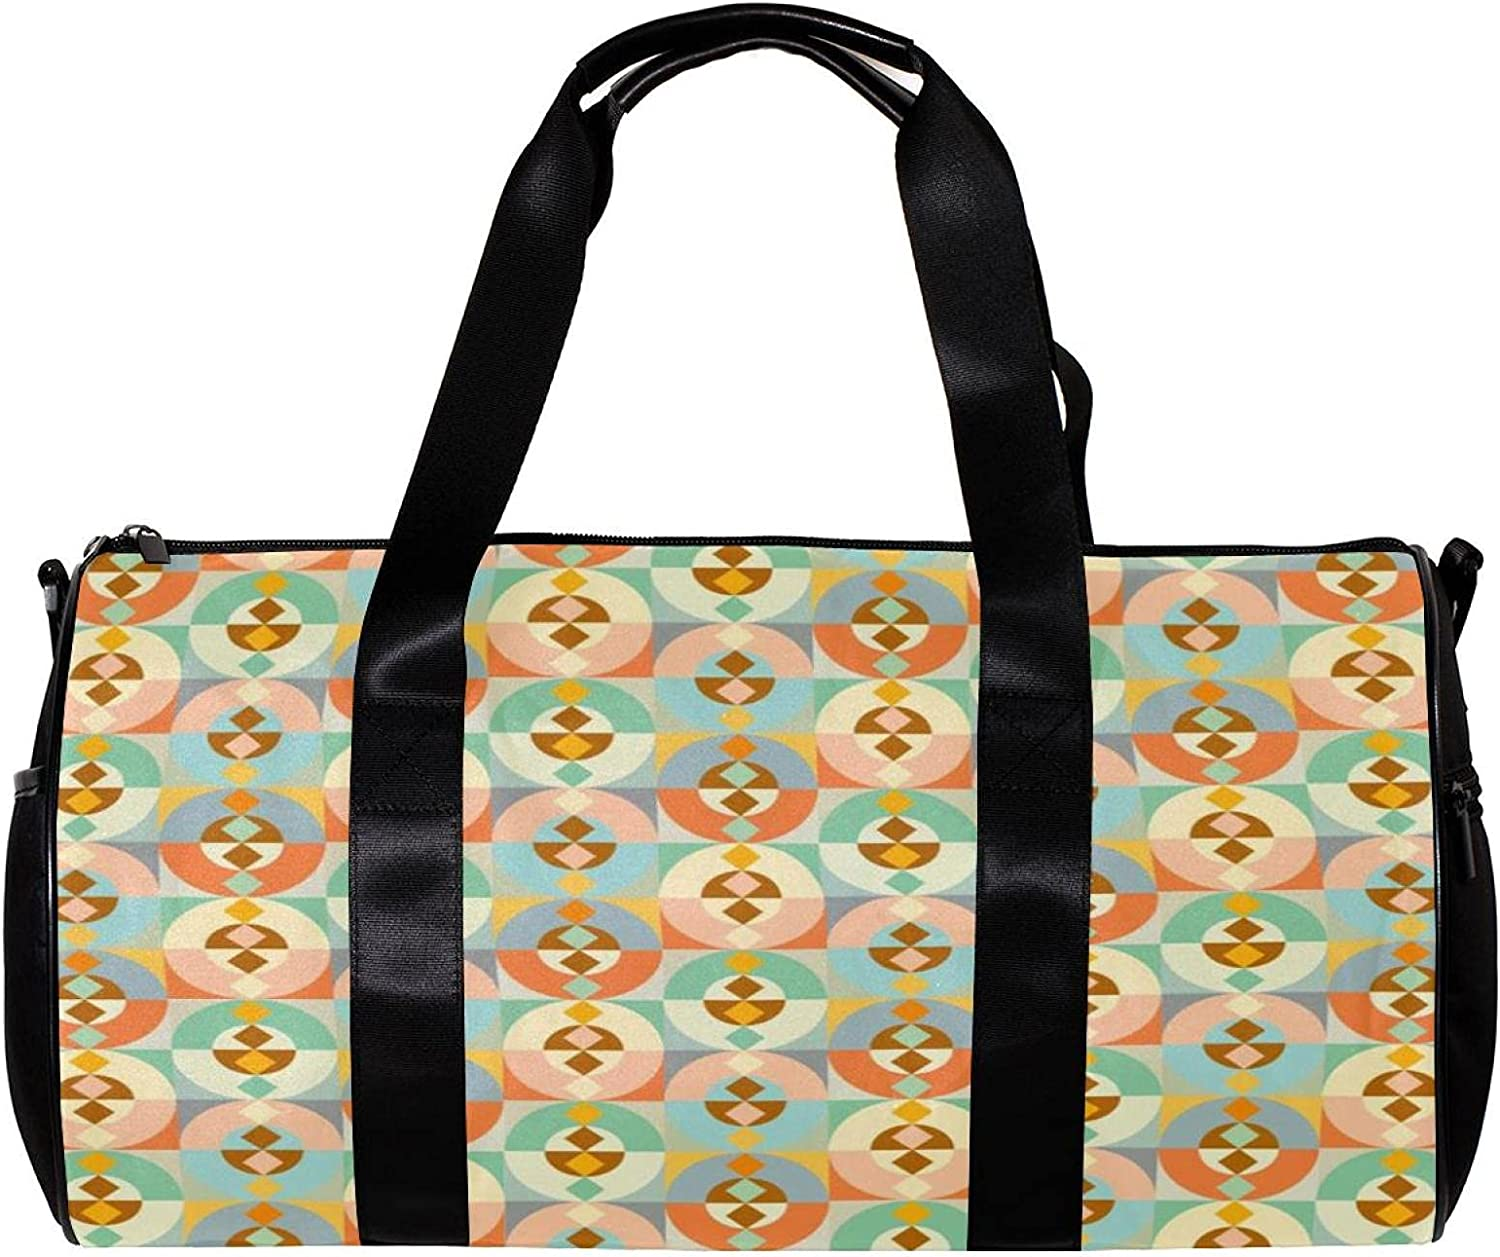 LEVEIS Abstract Clearance SALE Limited time Geometric Shape Sports Ca Tote Travel Duffel quality assurance Bag